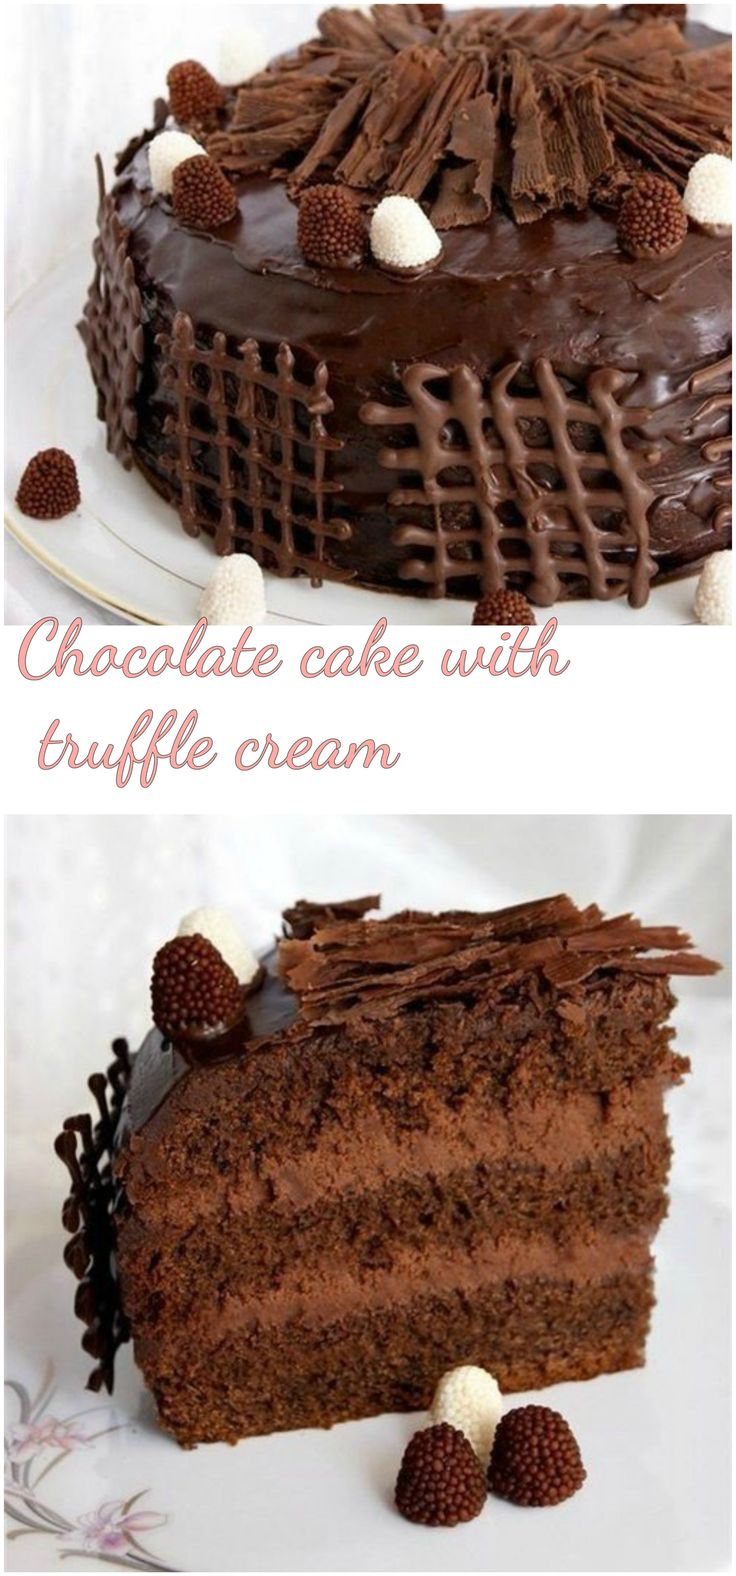 Chocolate cake with truffle cream   Ingredients:  4 eggs 2 cups sugar 1 cup milk 1 cup vegetable oil 1 pt. Vanilla. sugar 3 tbsp. tablespoons cocoa powder 1 pt. Baking powder 2 cups of flour